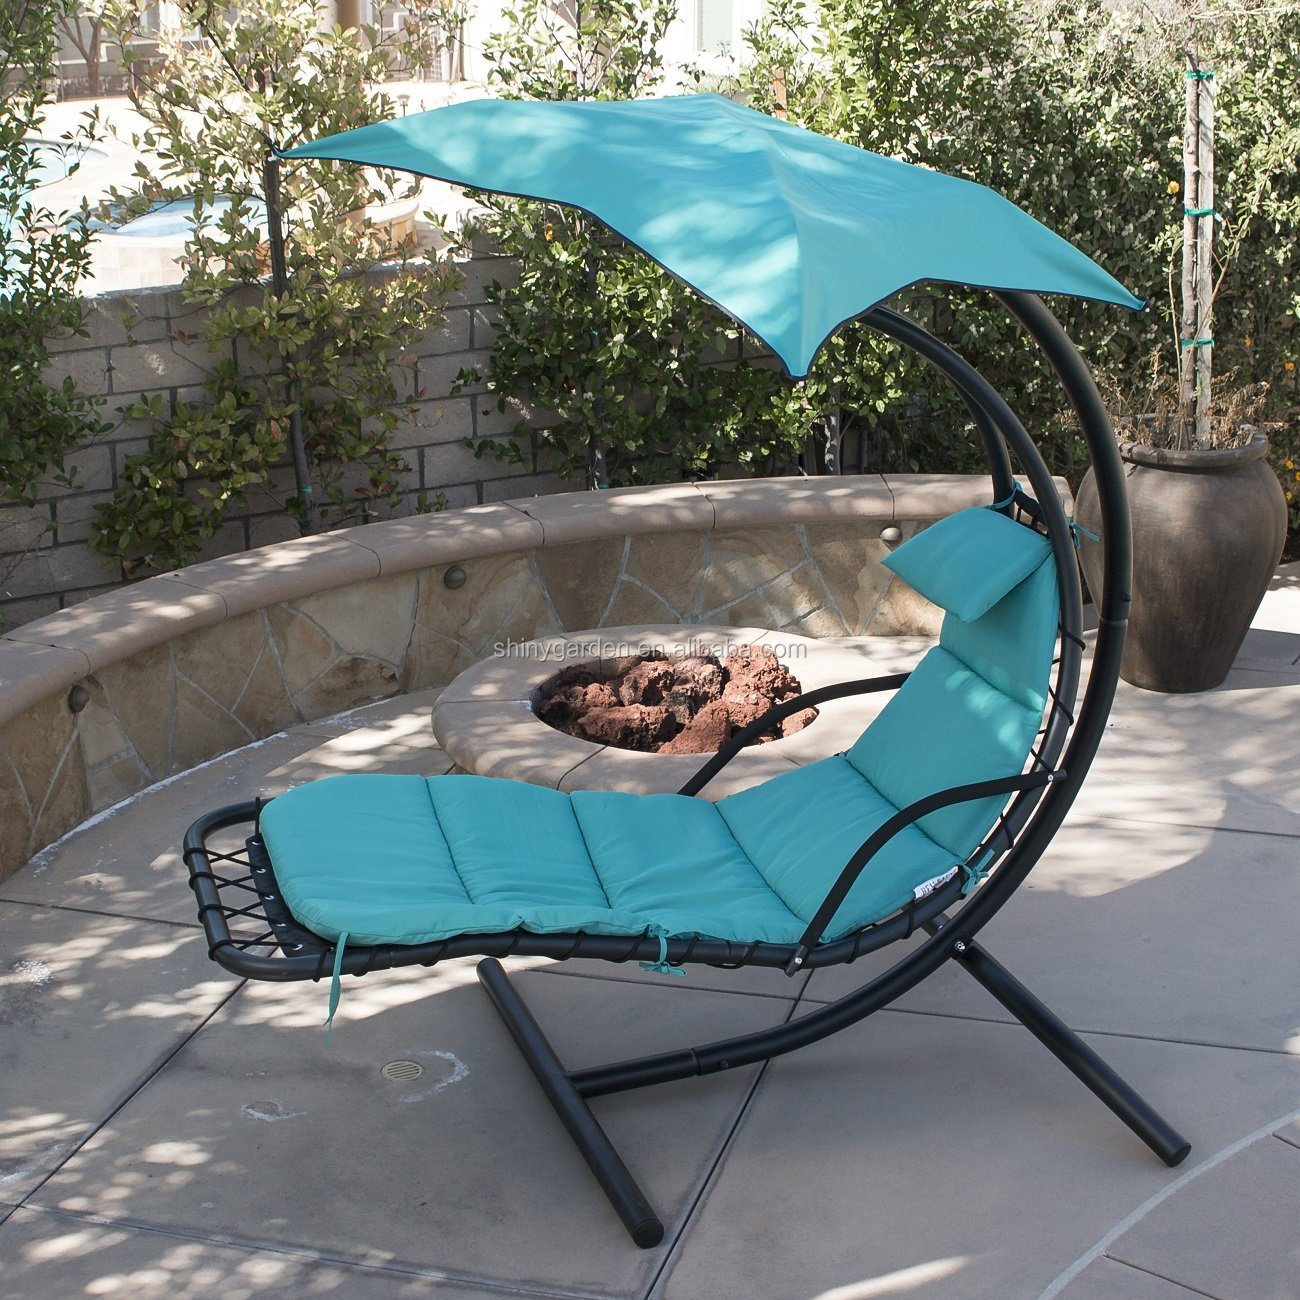 Hanging Helicopter Sun Lounger Chair Dream Chair Swing ... on Hanging Helicopter Dream Lounger Chair id=52711